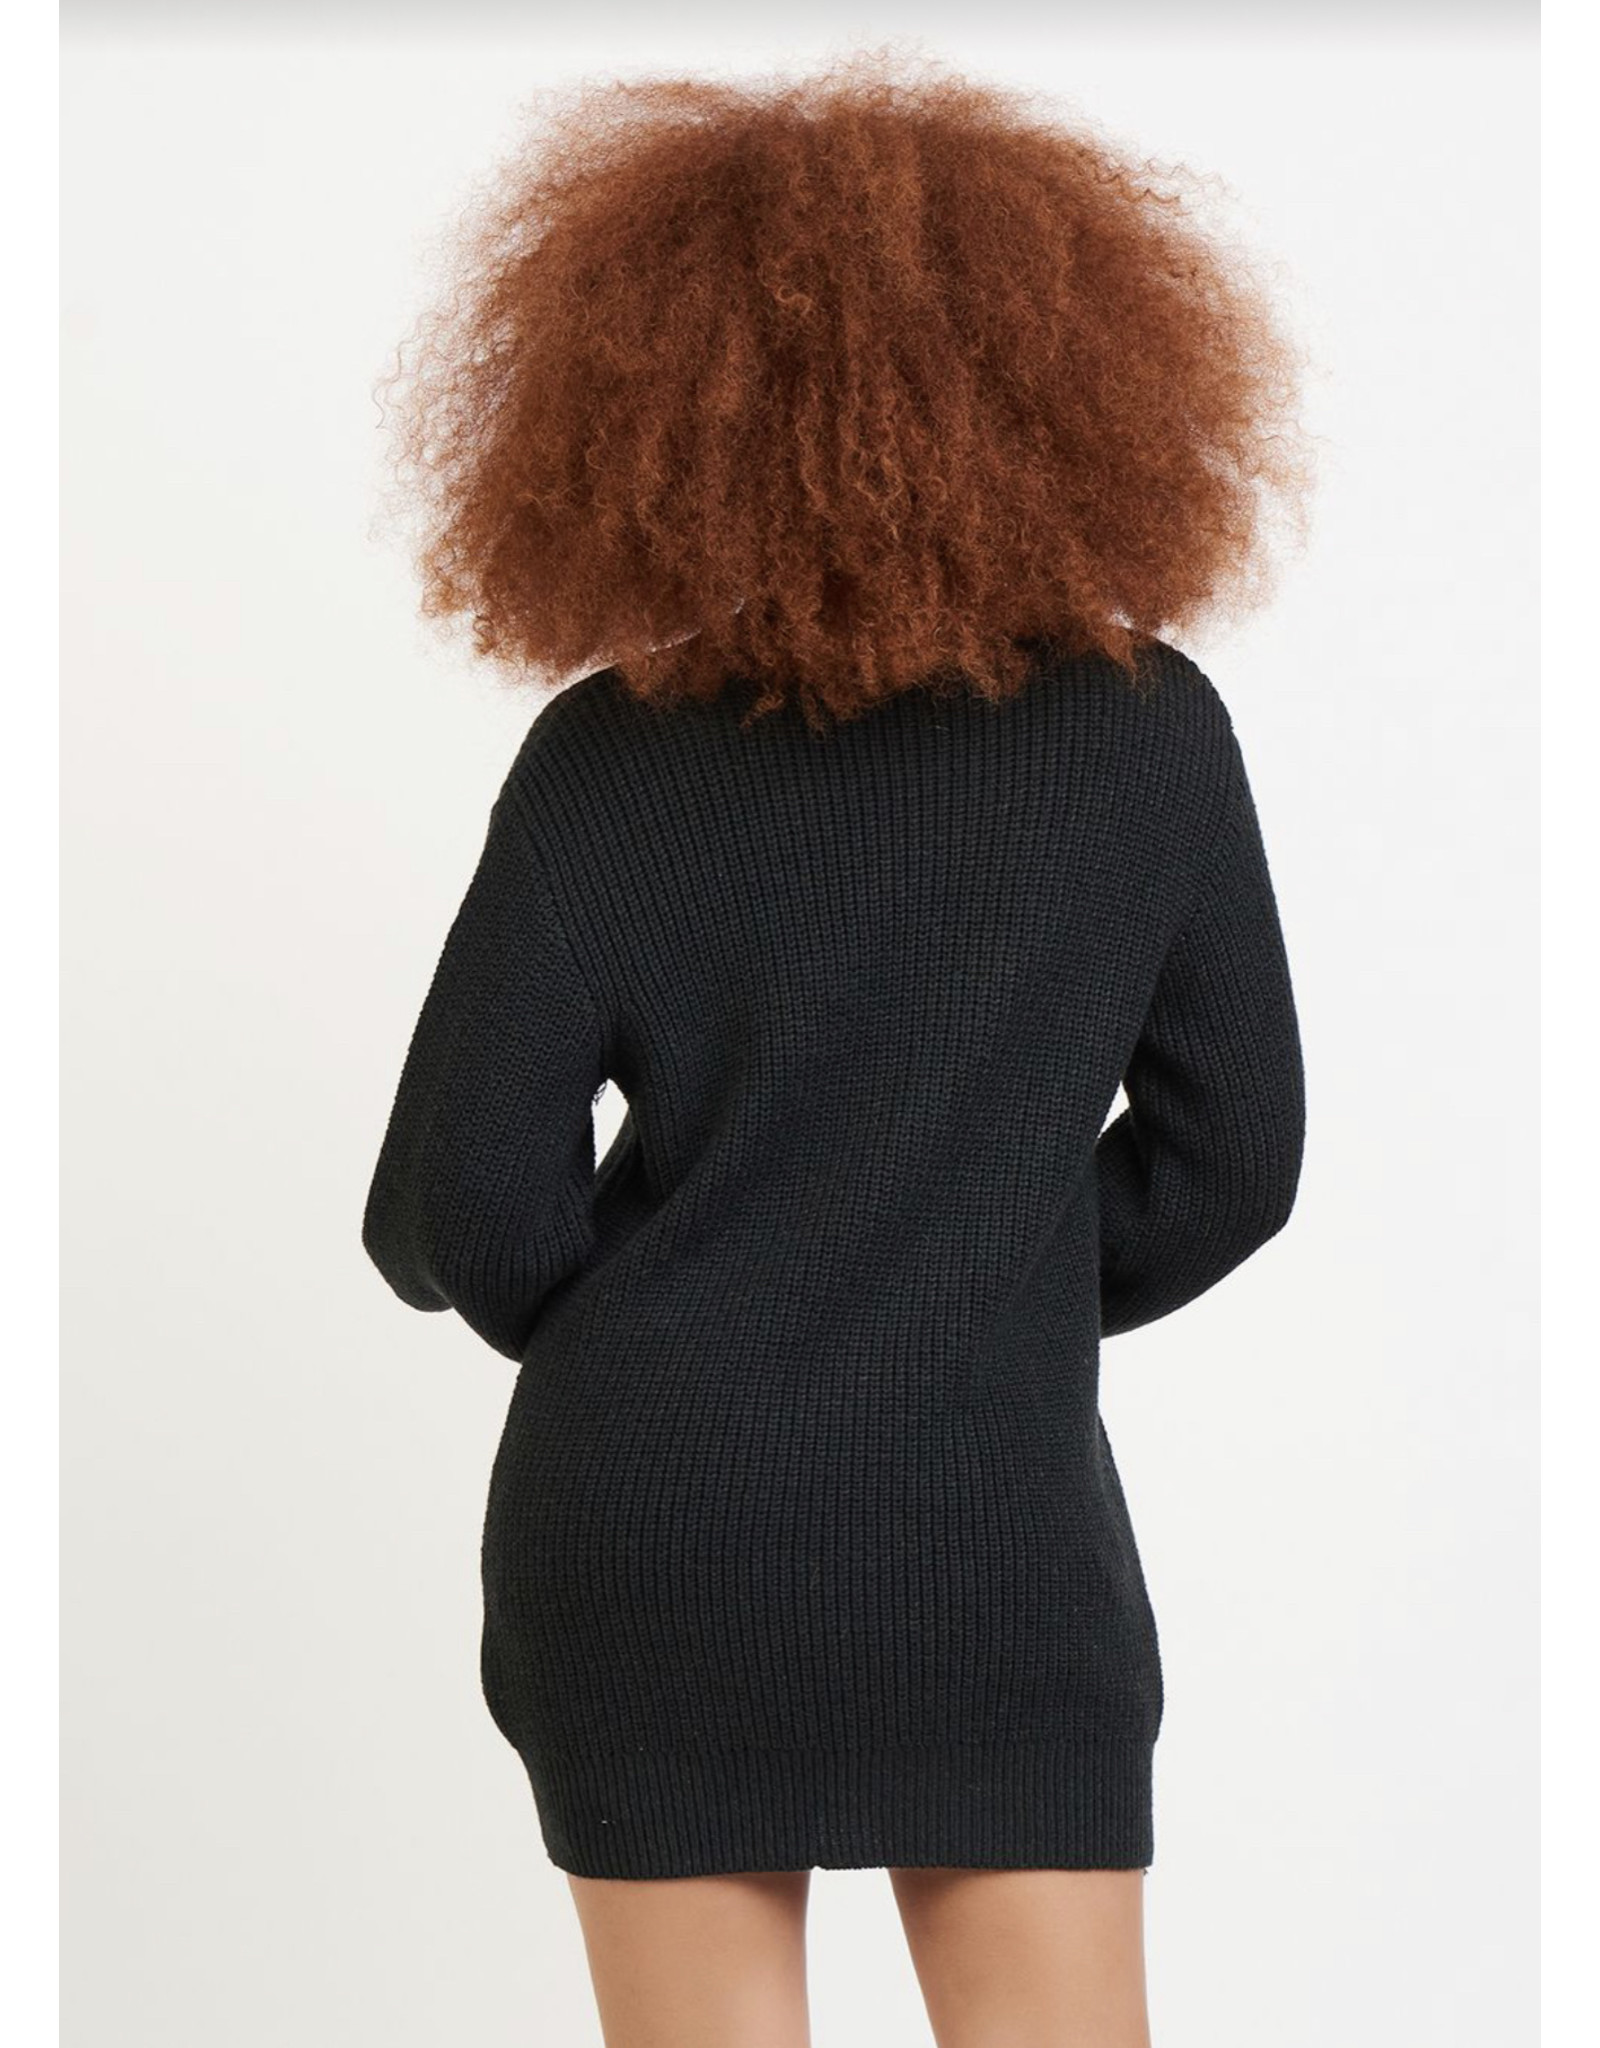 Dex Cocoon Sweater Dress, Charcoal